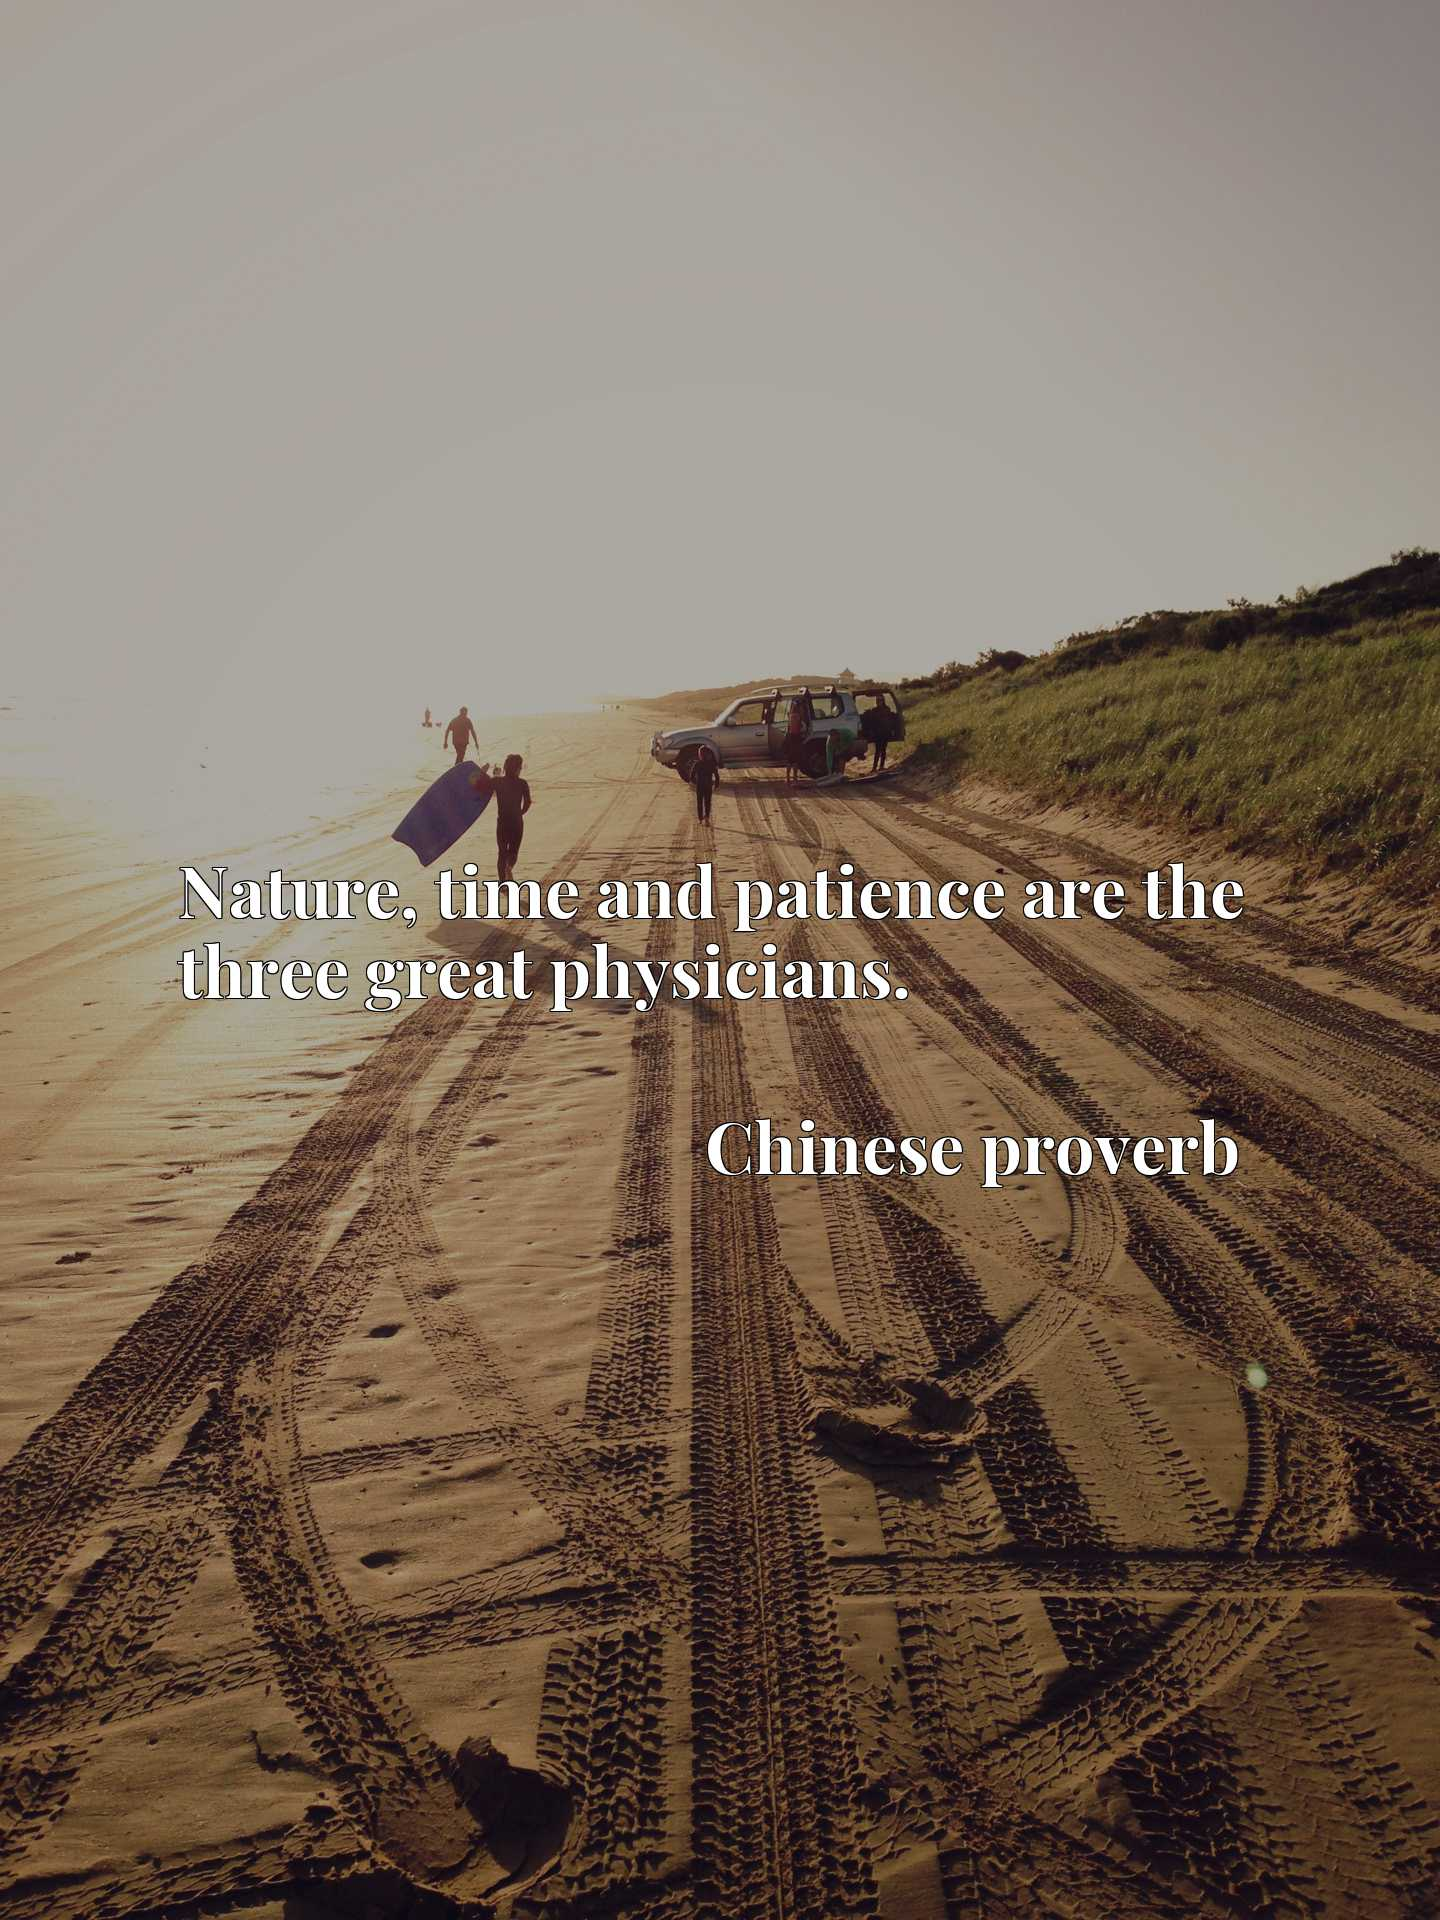 Nature, time and patience are the three great physicians.